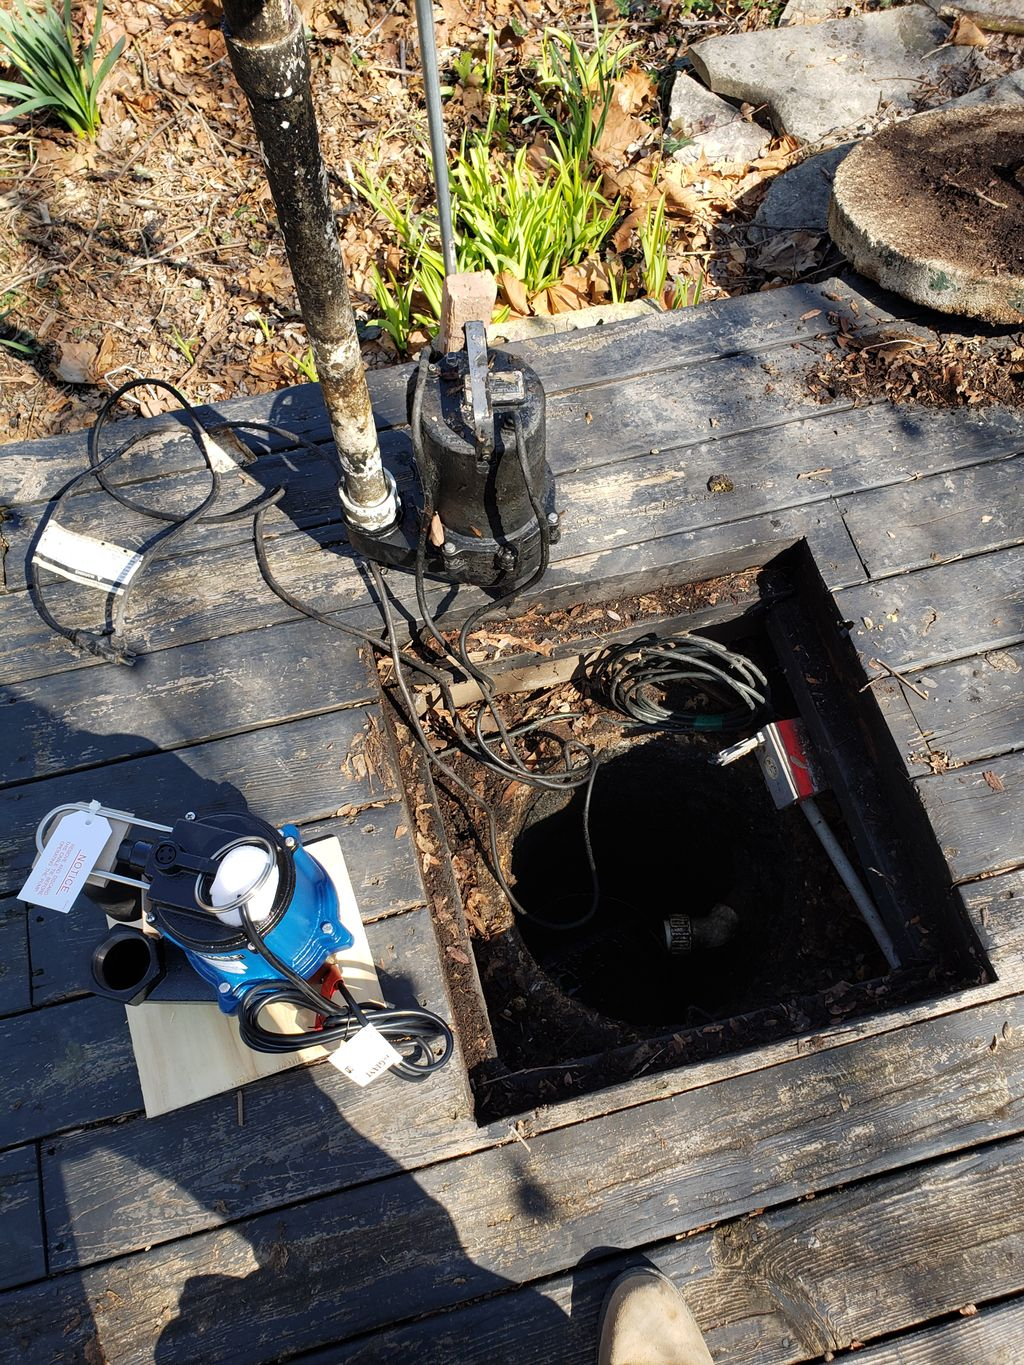 Septic Pump replacement